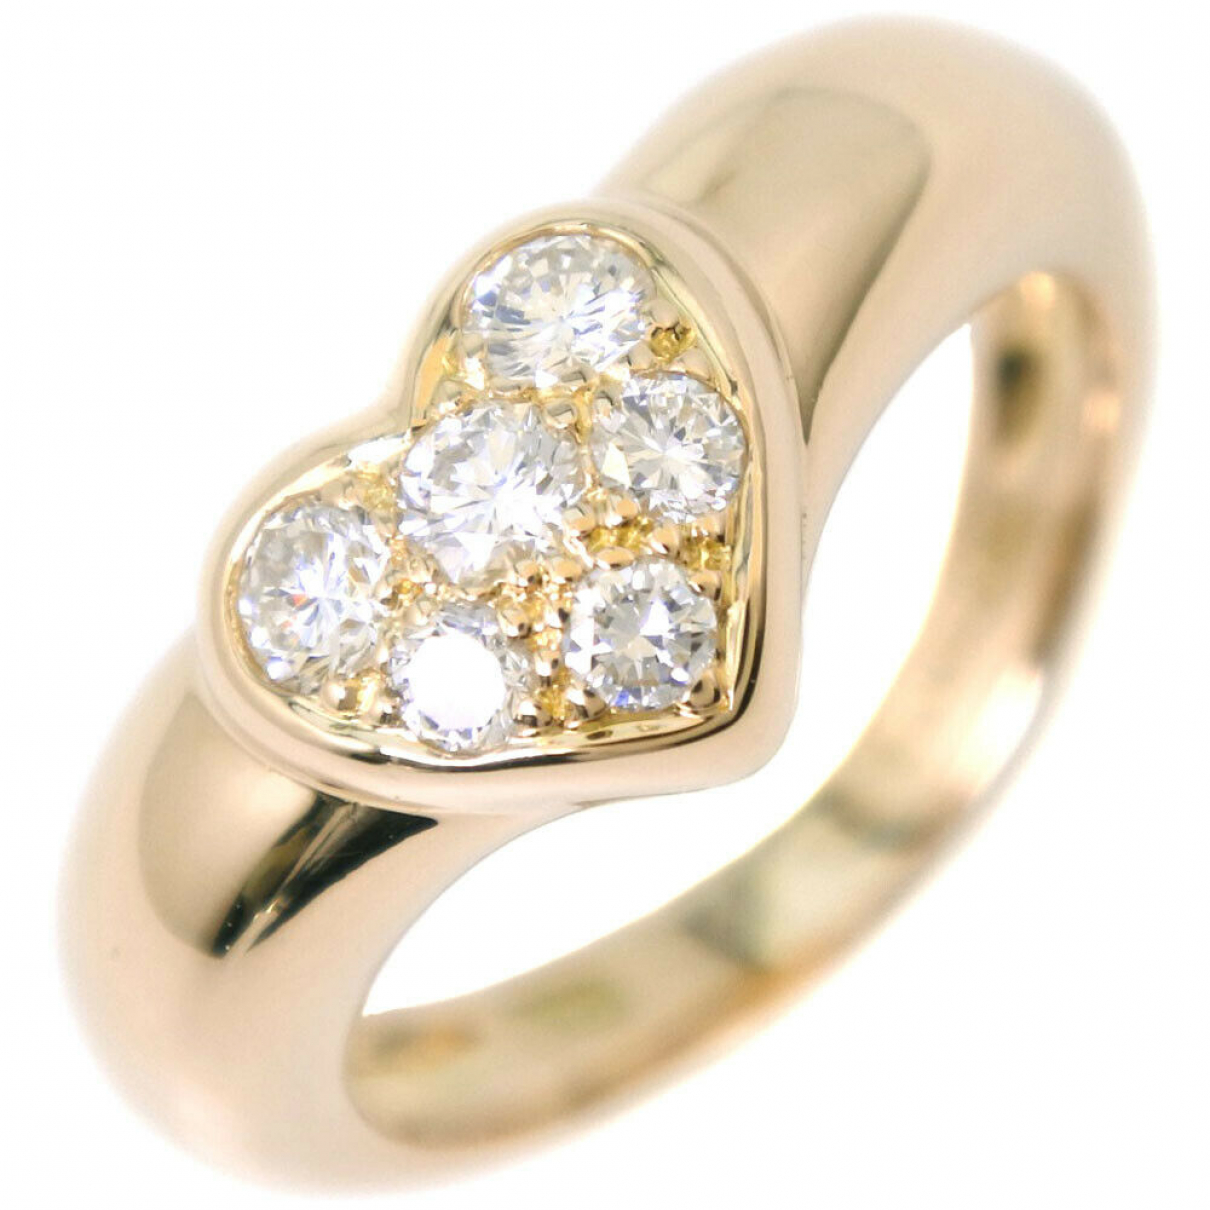 Tiffany & Co \N Yellow gold ring for Women 4 US